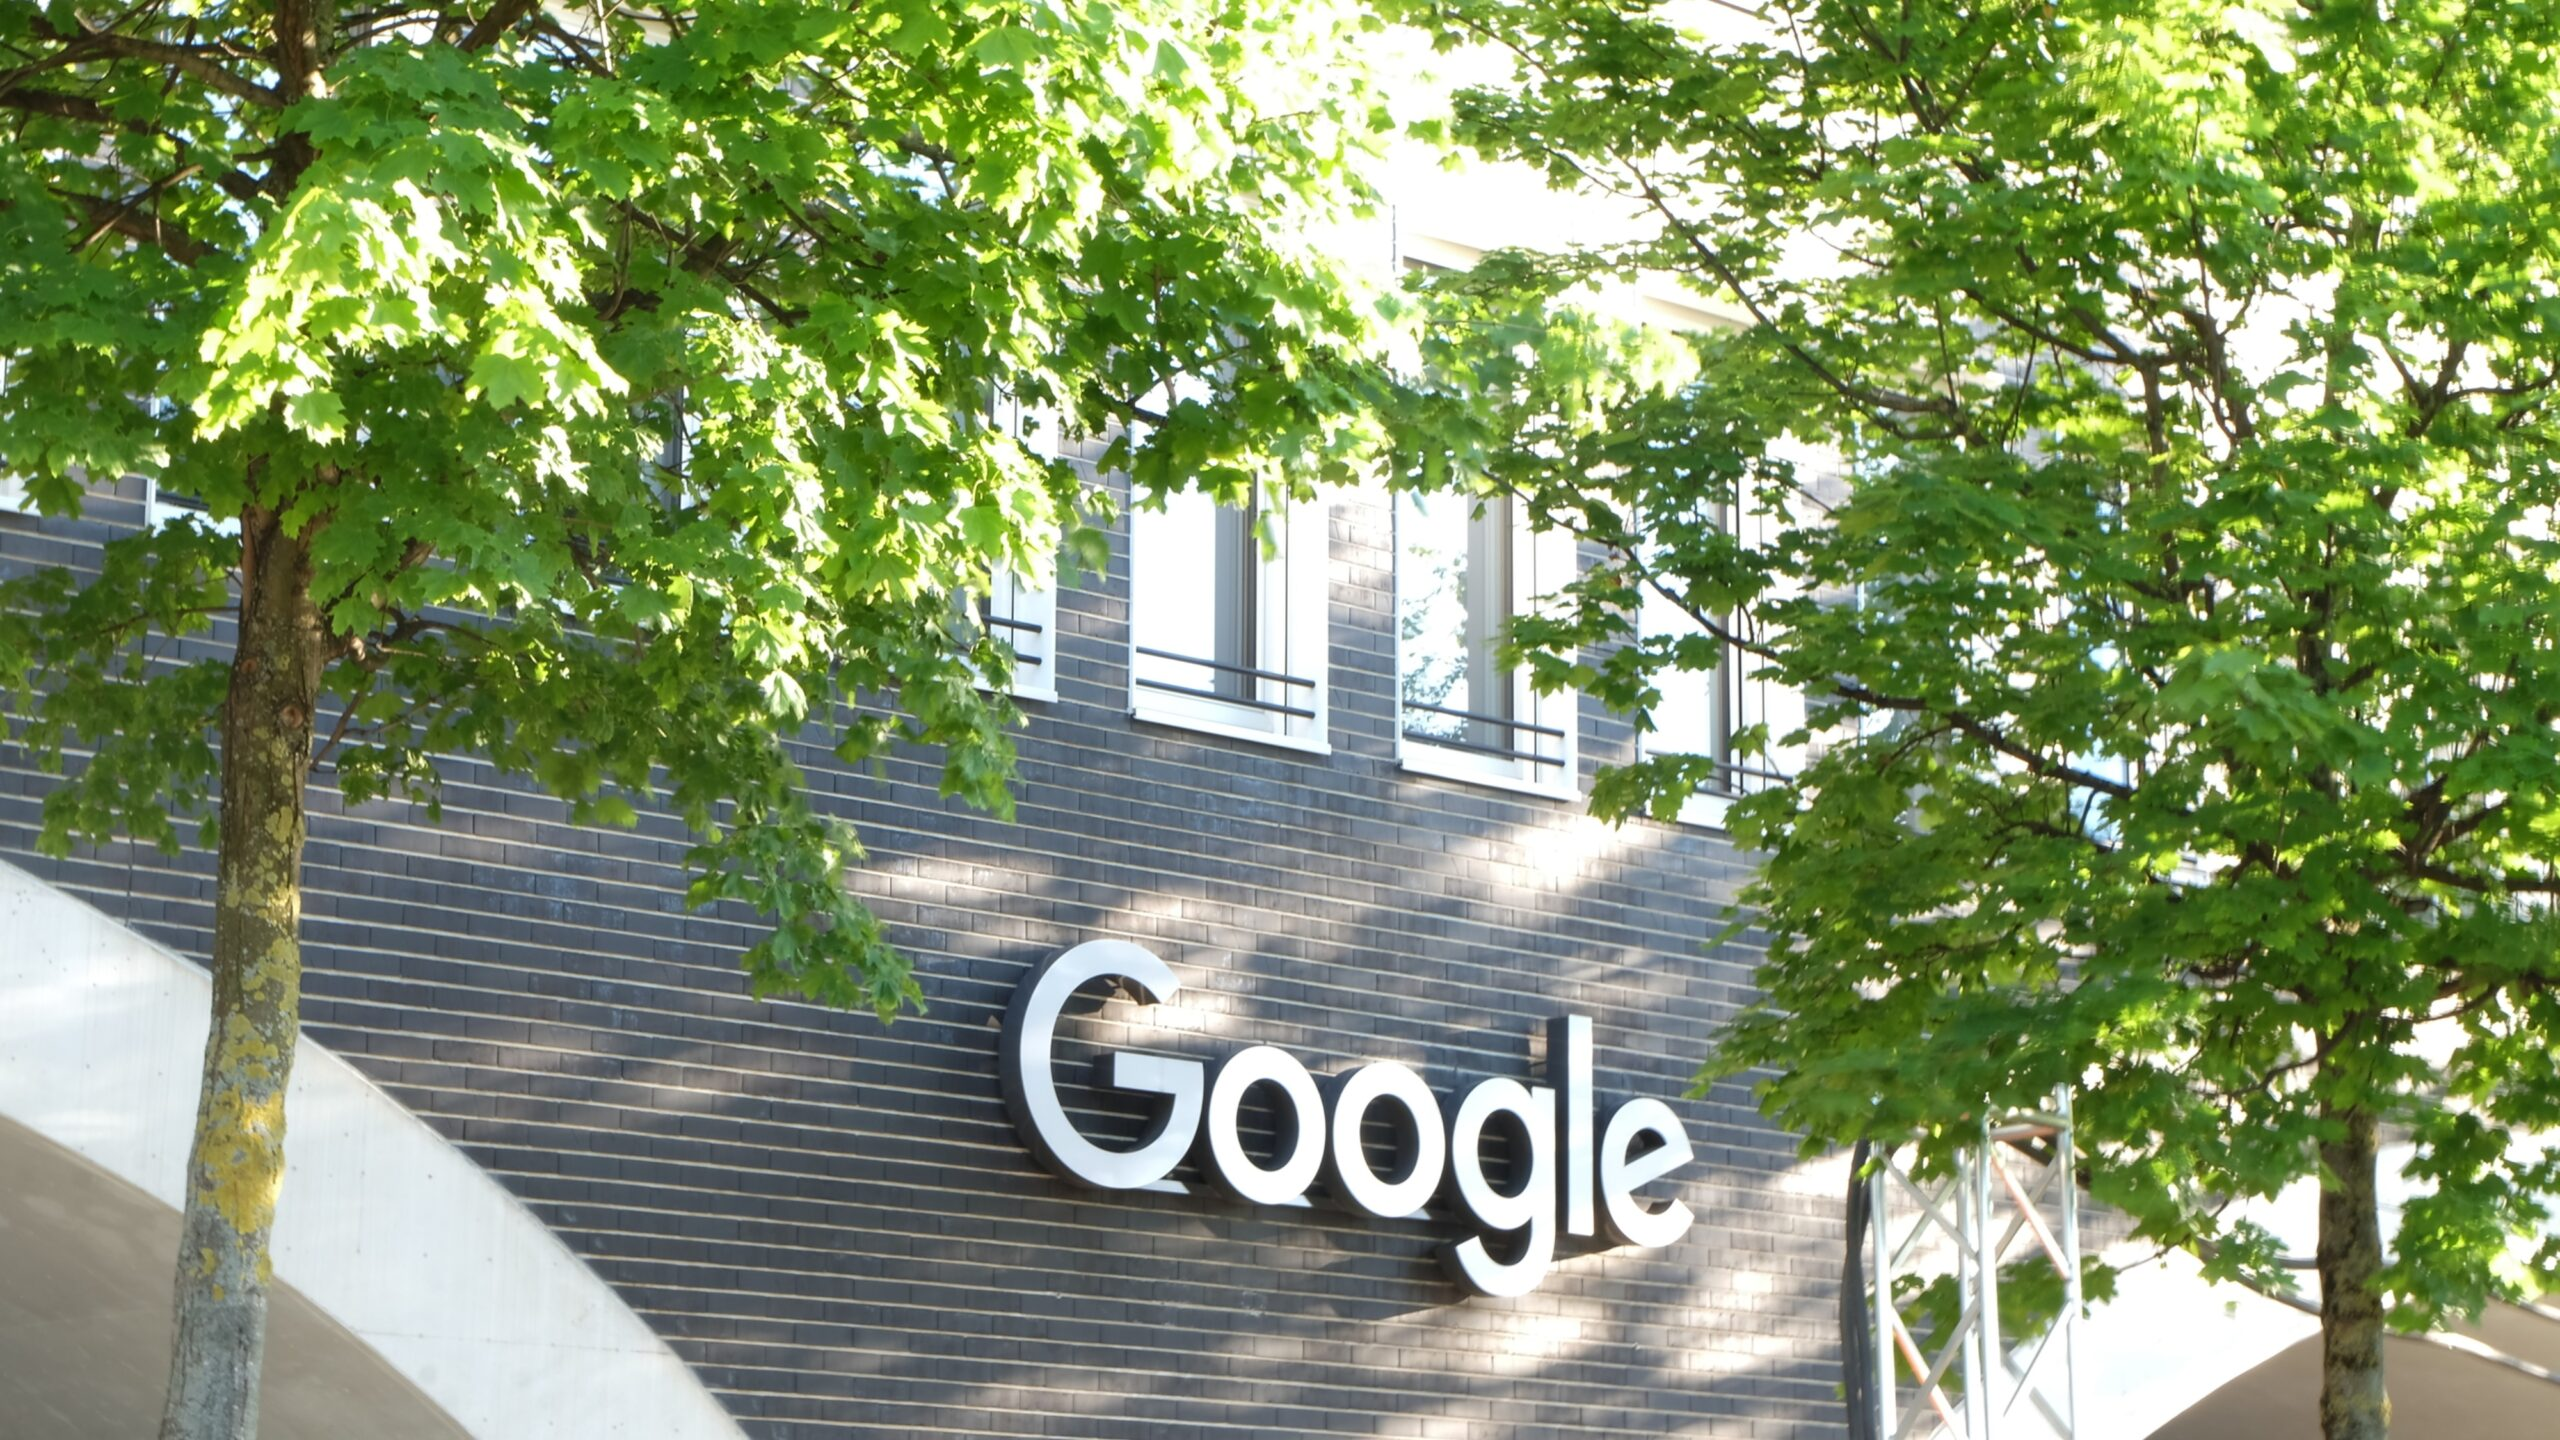 google-has-over-70-job-openings-in-ontario-right-now-&-some-of-them-are-so-unique